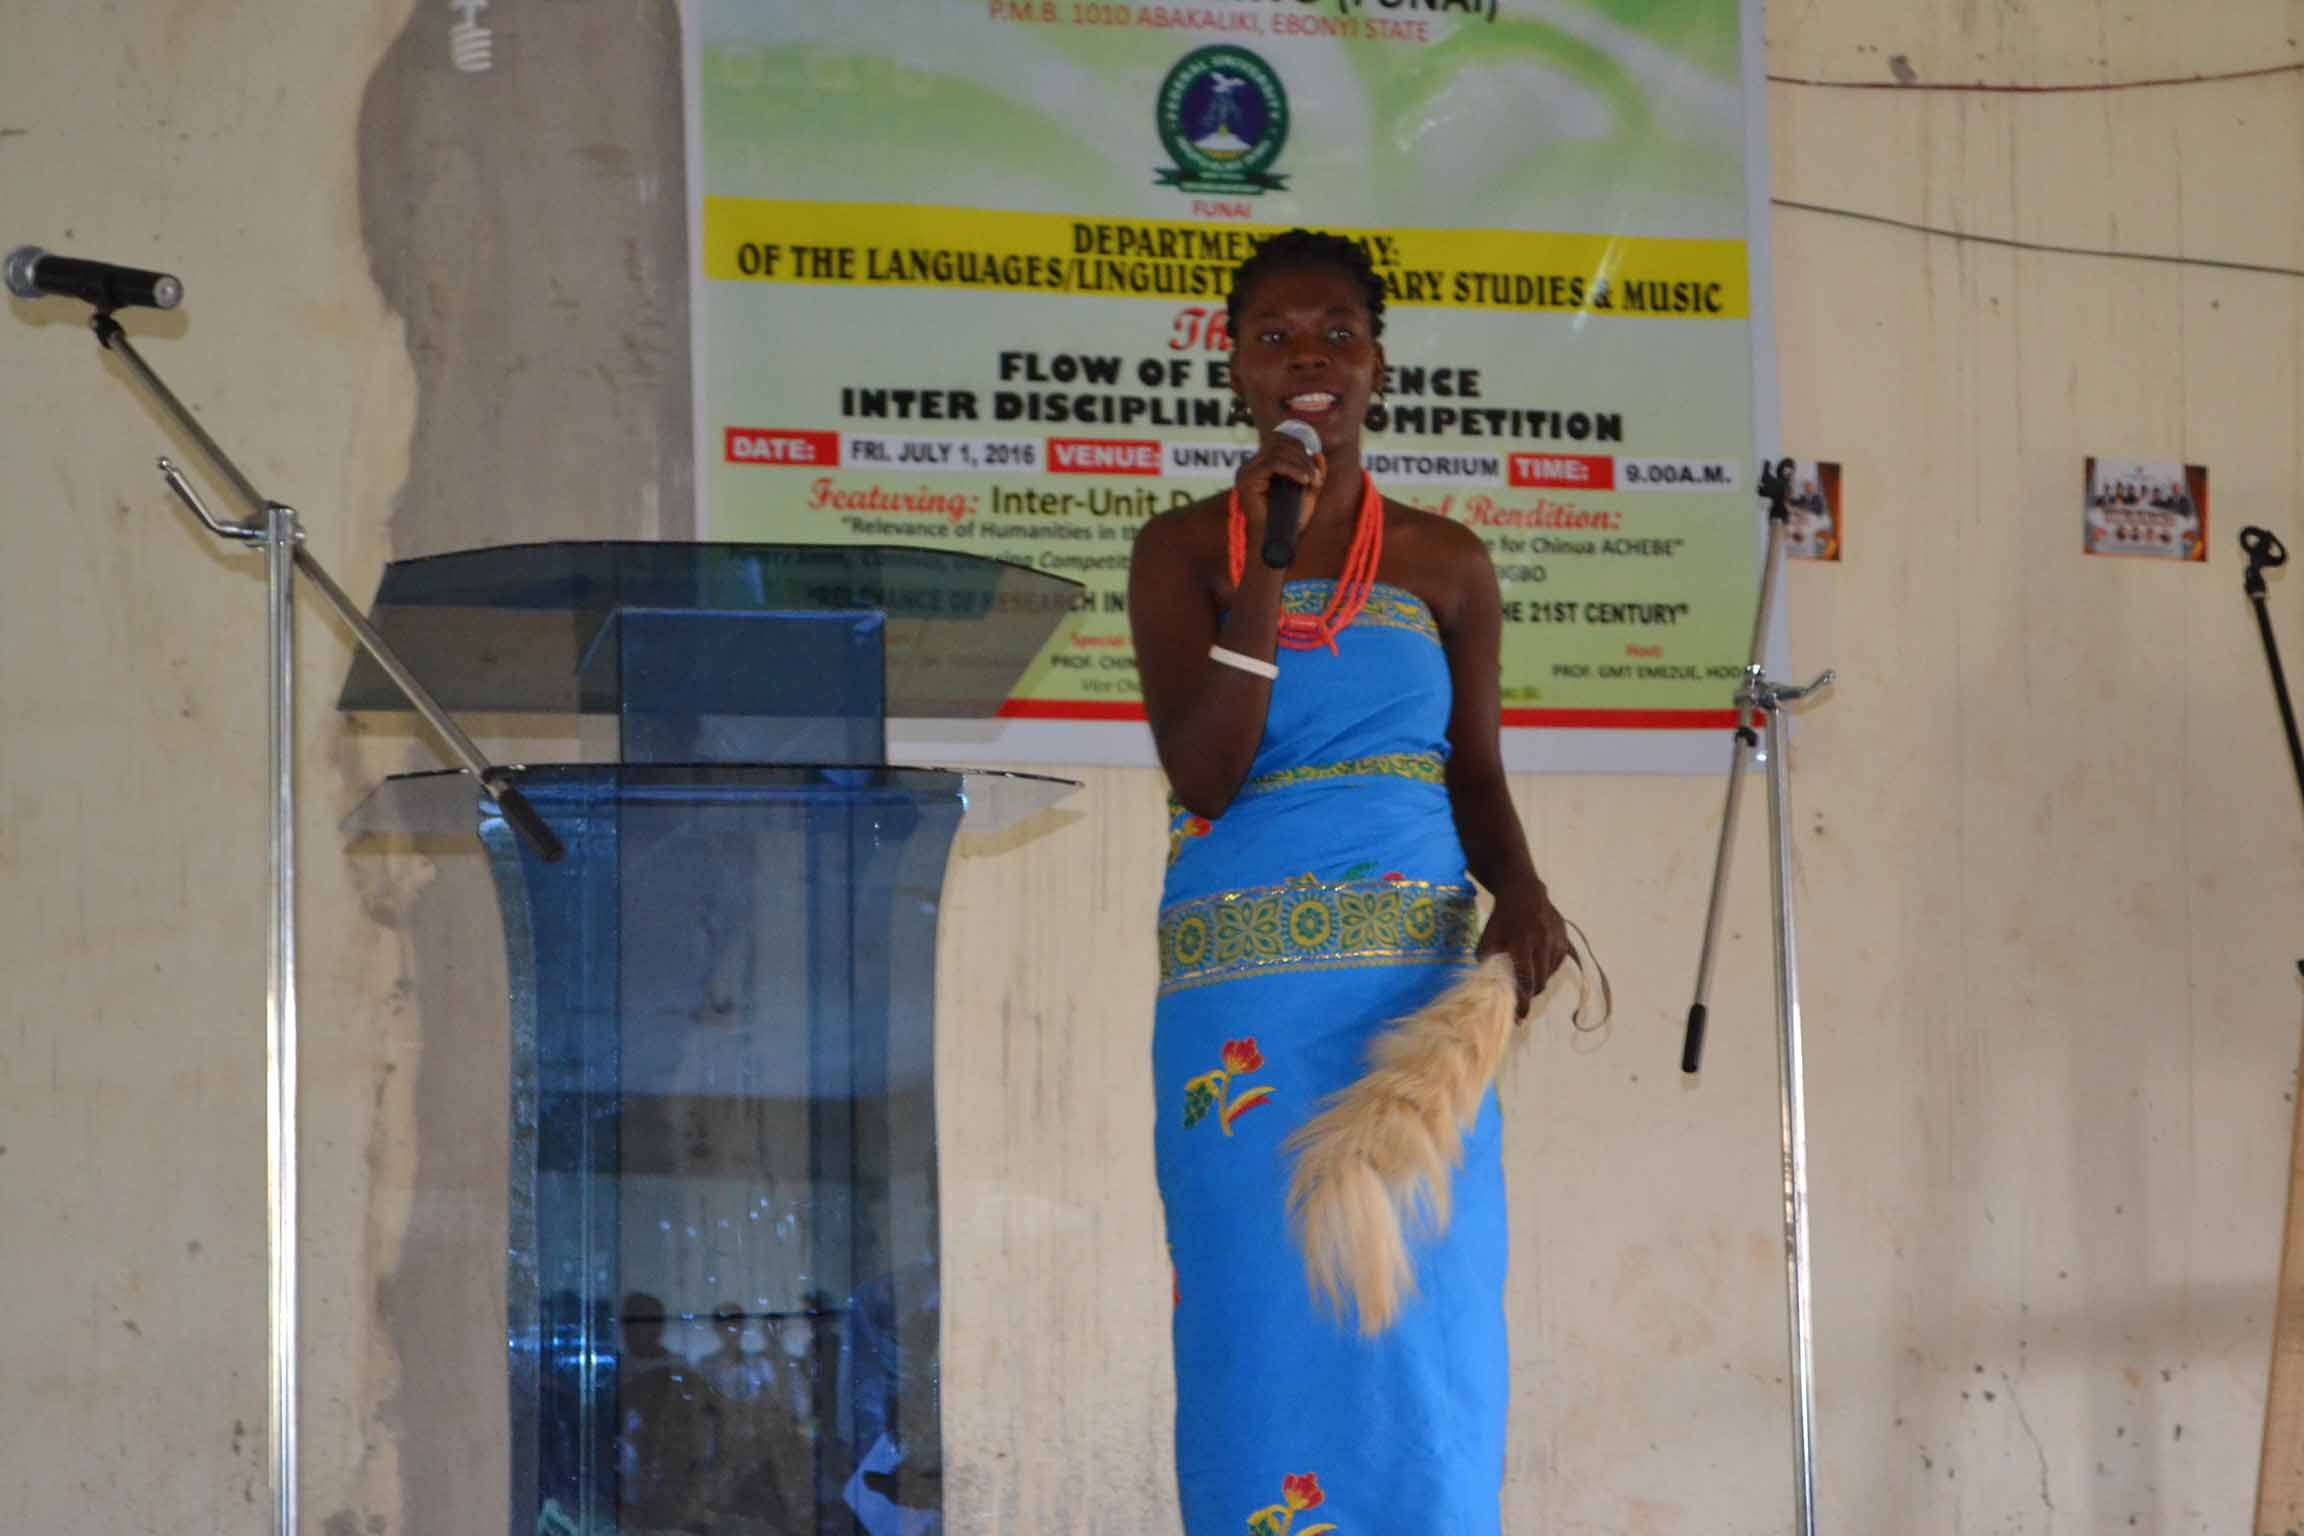 A student giving a poem in Igbo language